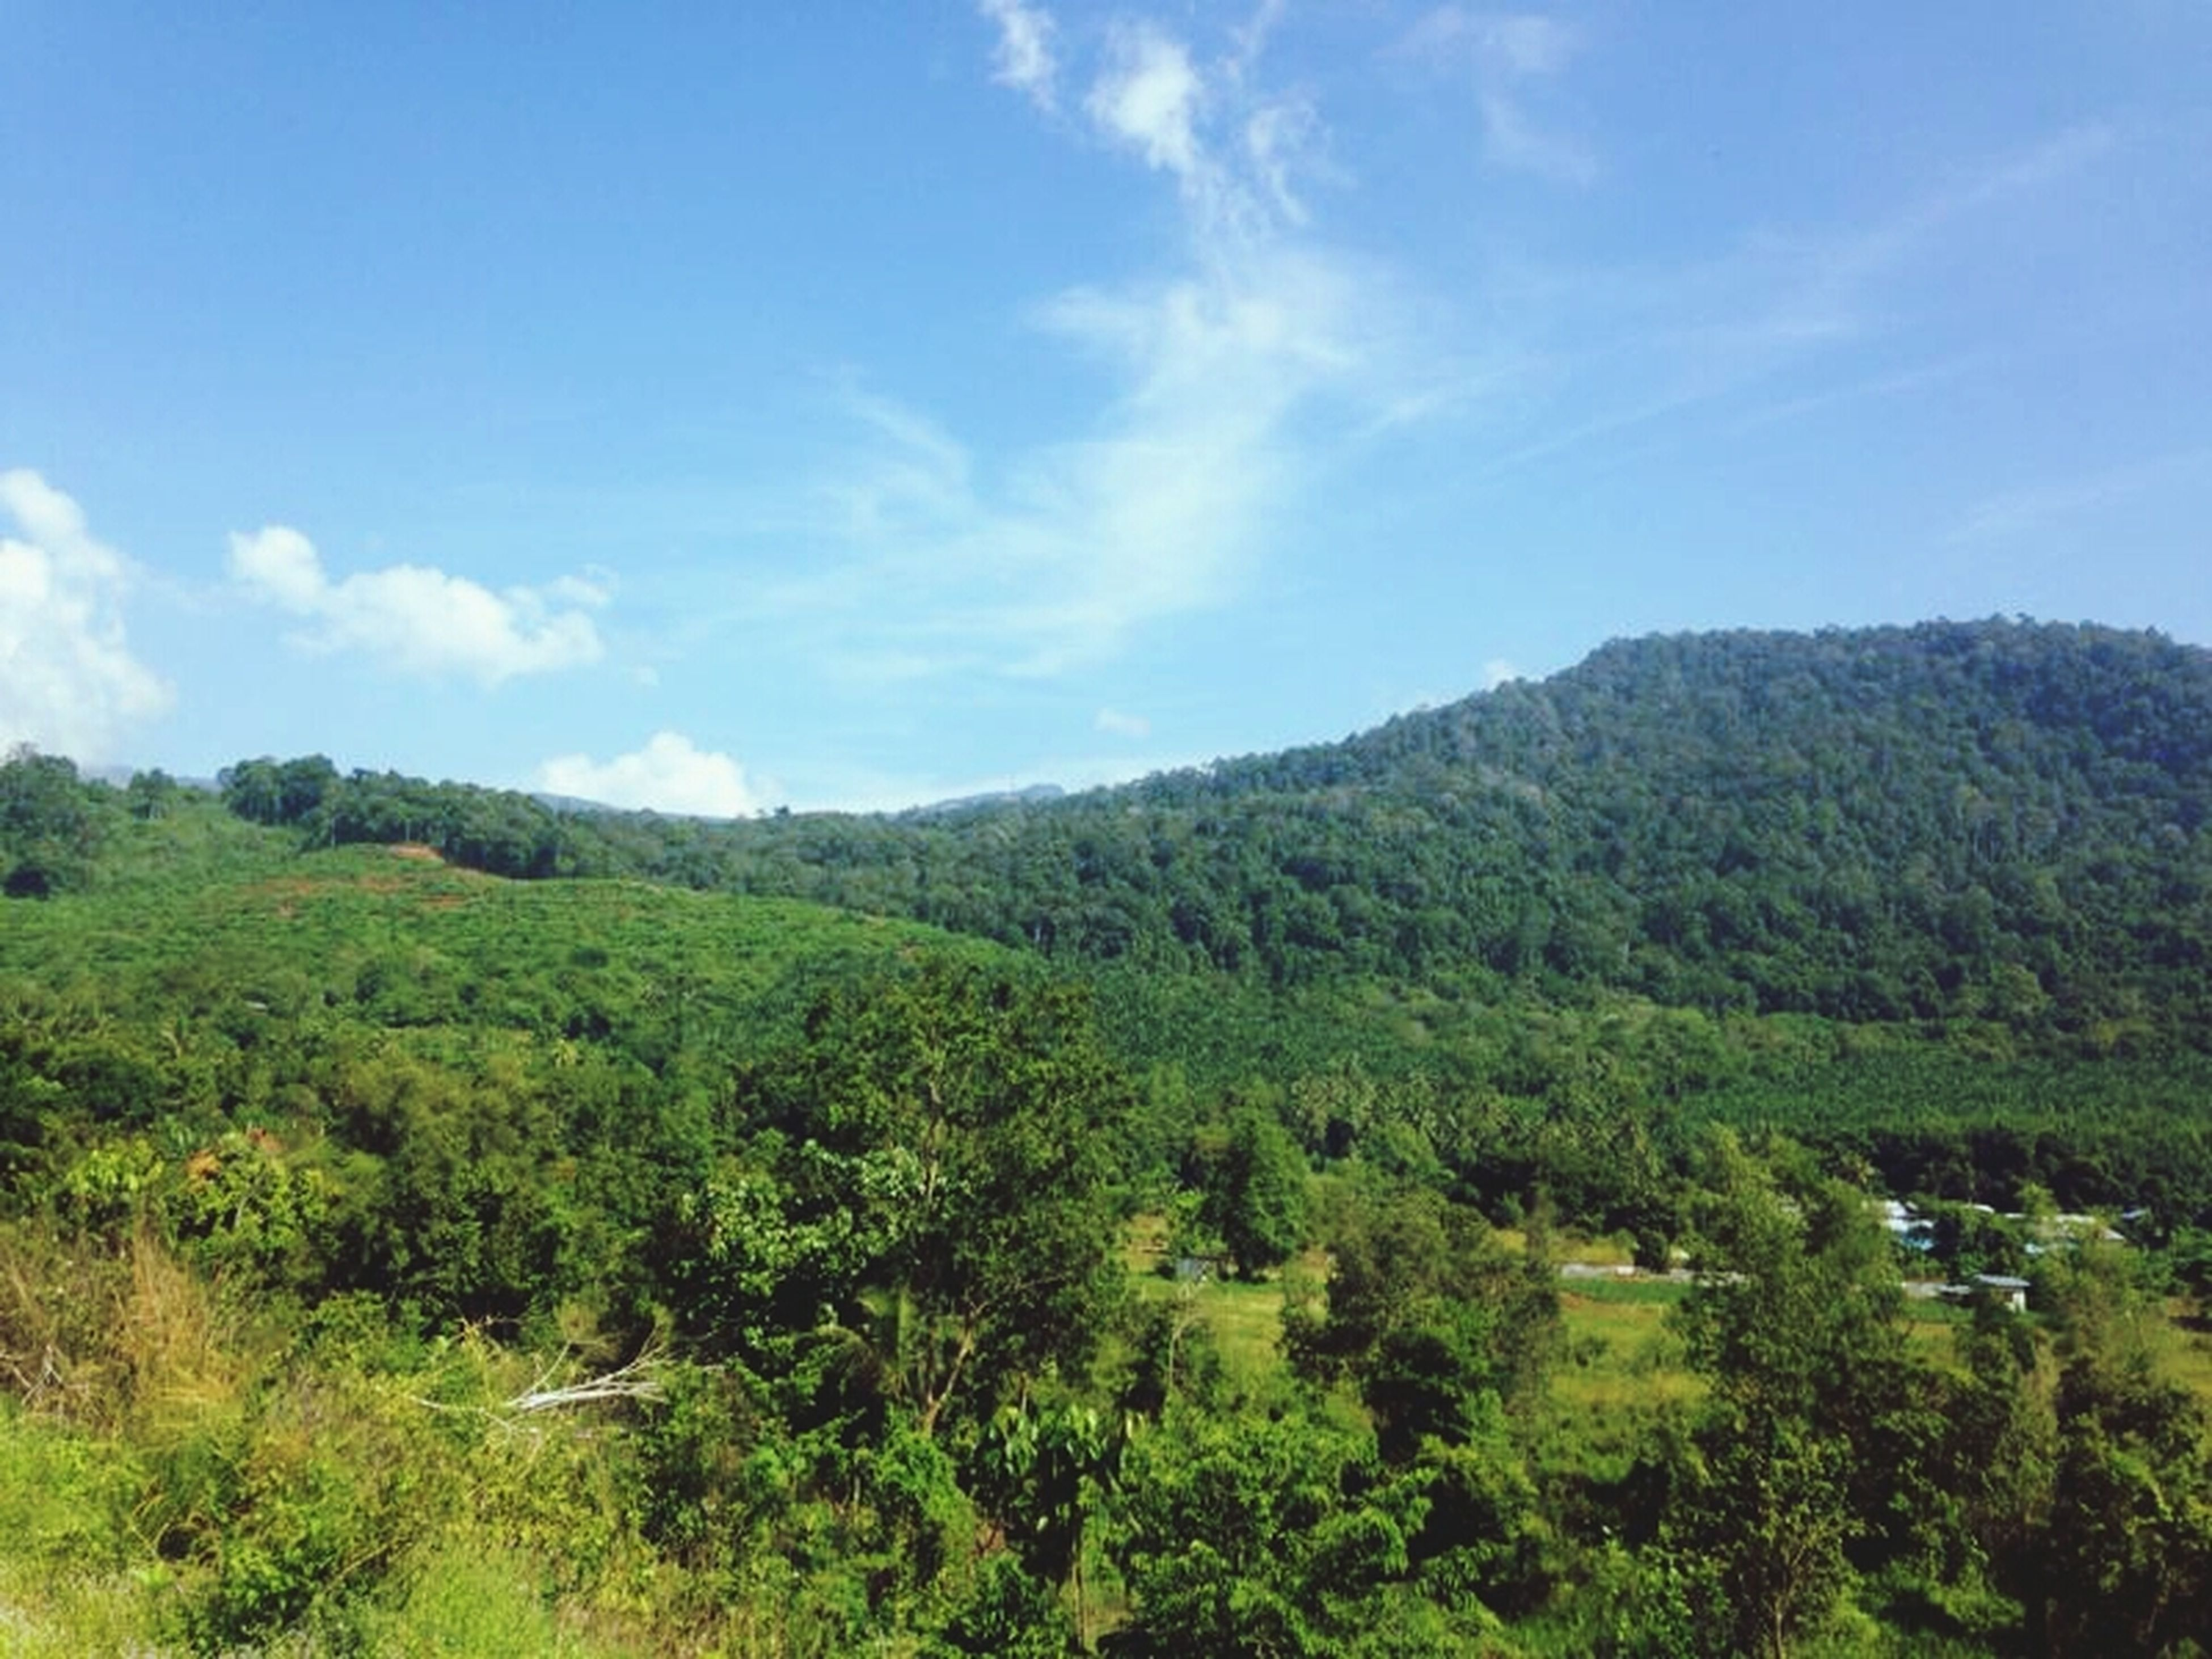 mountain, tranquil scene, tree, tranquility, sky, scenics, beauty in nature, green color, landscape, nature, growth, lush foliage, mountain range, non-urban scene, blue, cloud, cloud - sky, idyllic, green, day